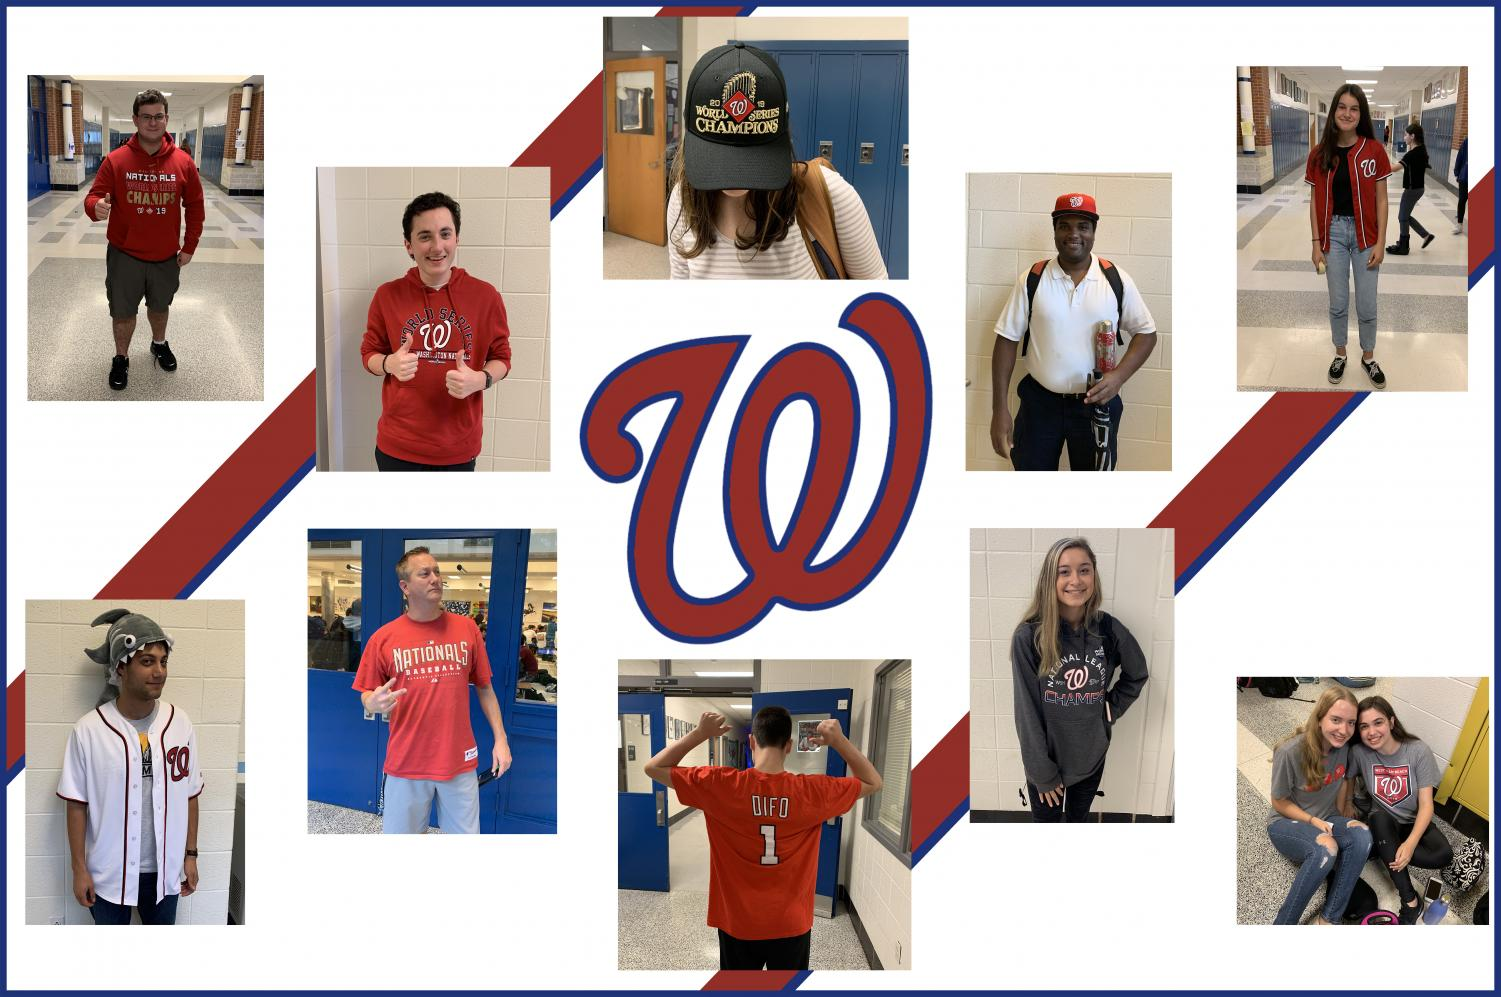 Students and teachers wore their Nats gear to school today in celebration of the World Series win.